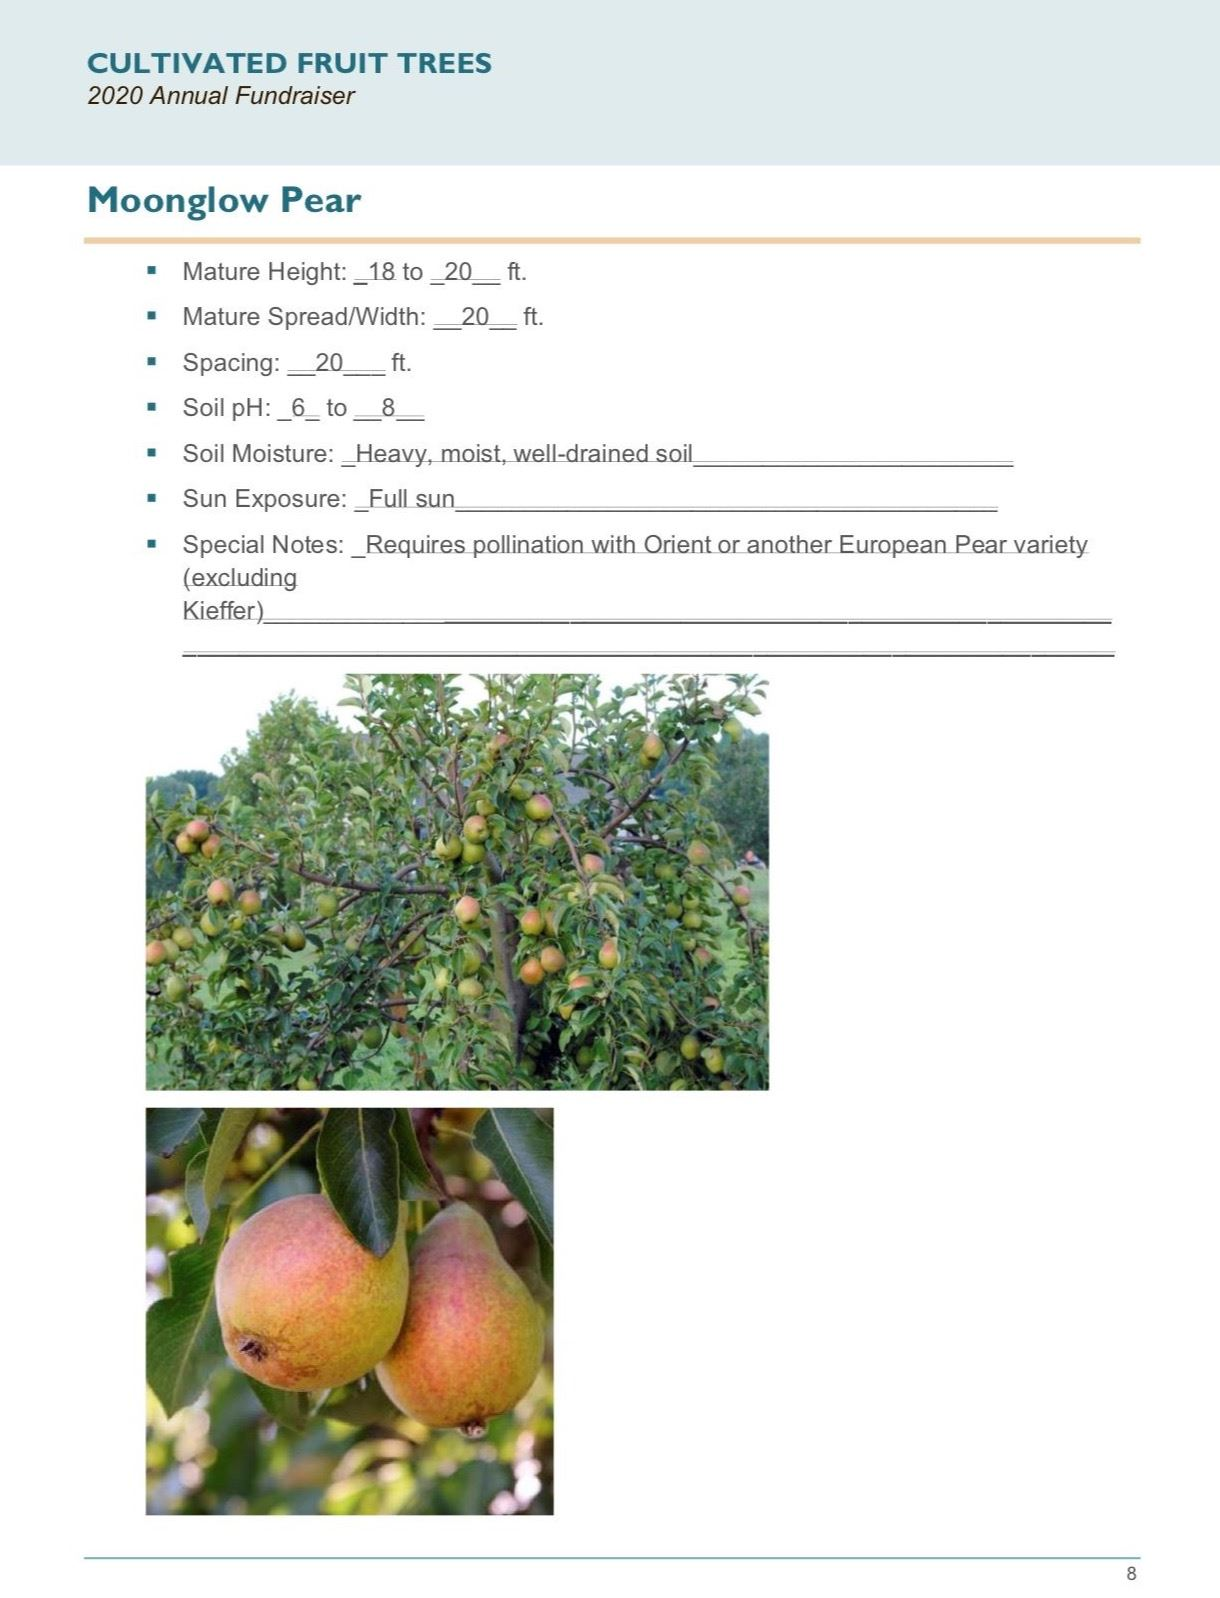 Brochure Template Draft_Cultivated_Fruit_Treespg8